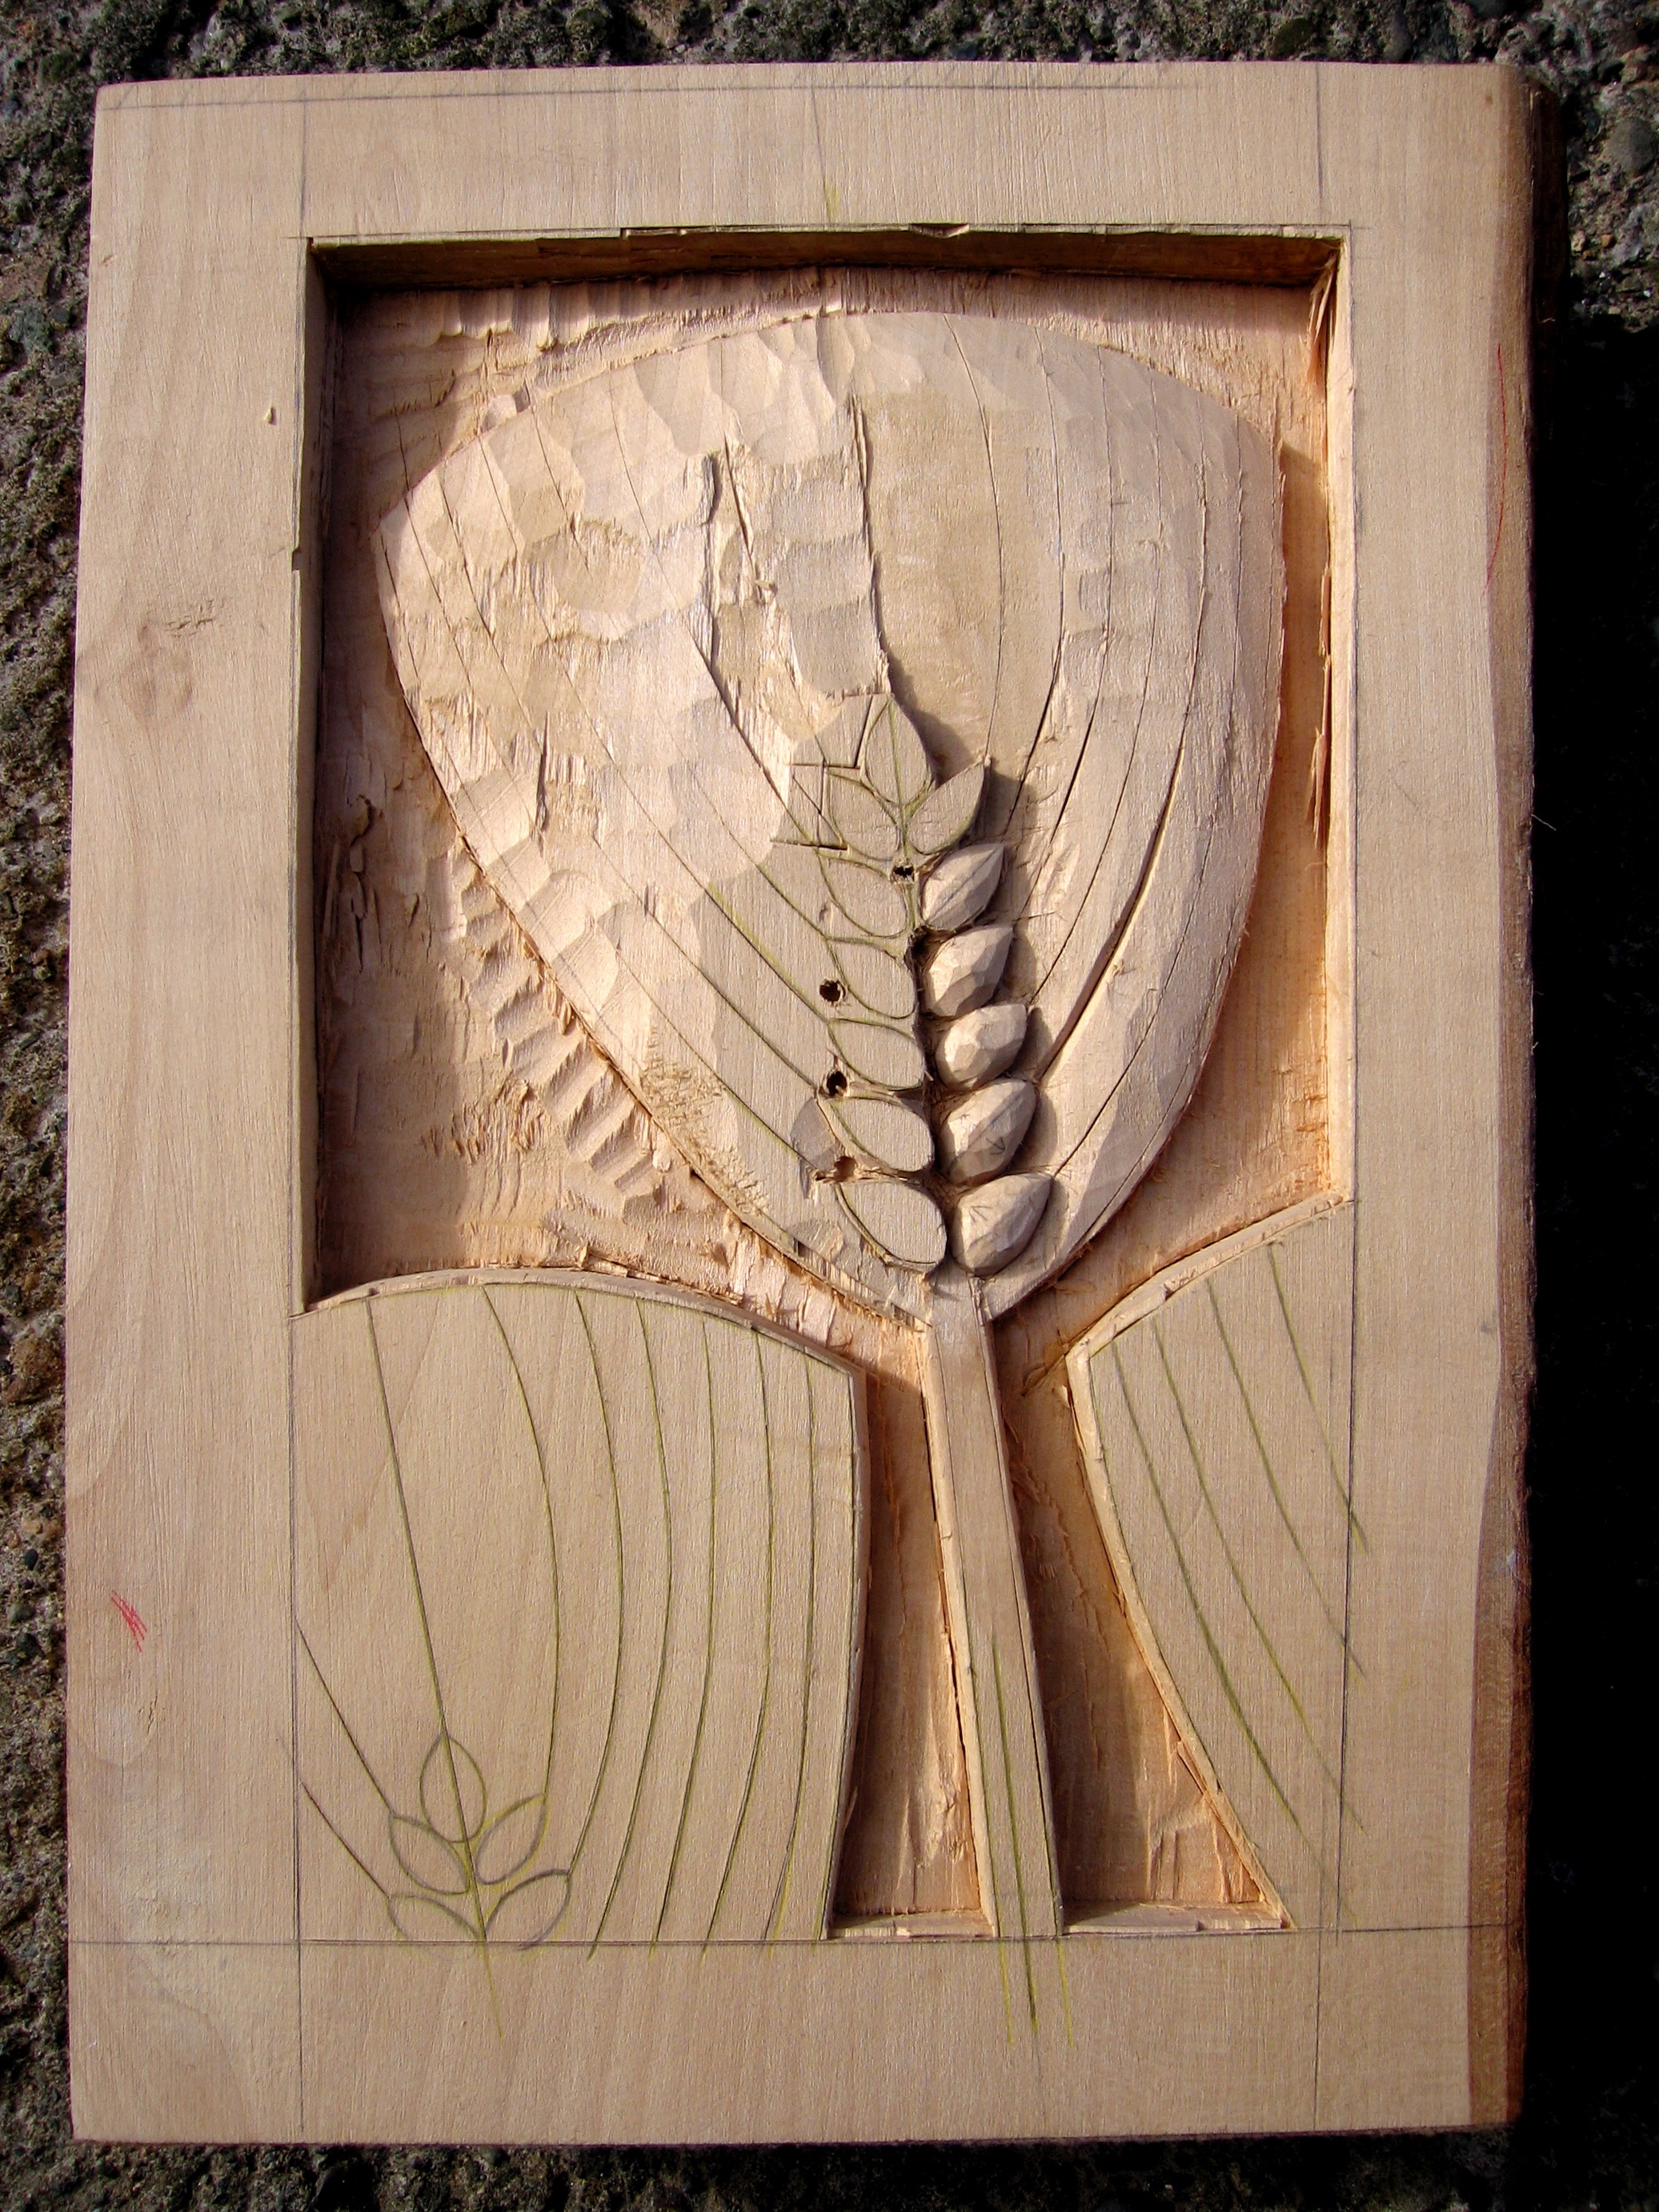 Relief Carving in Lime Wood Image #2